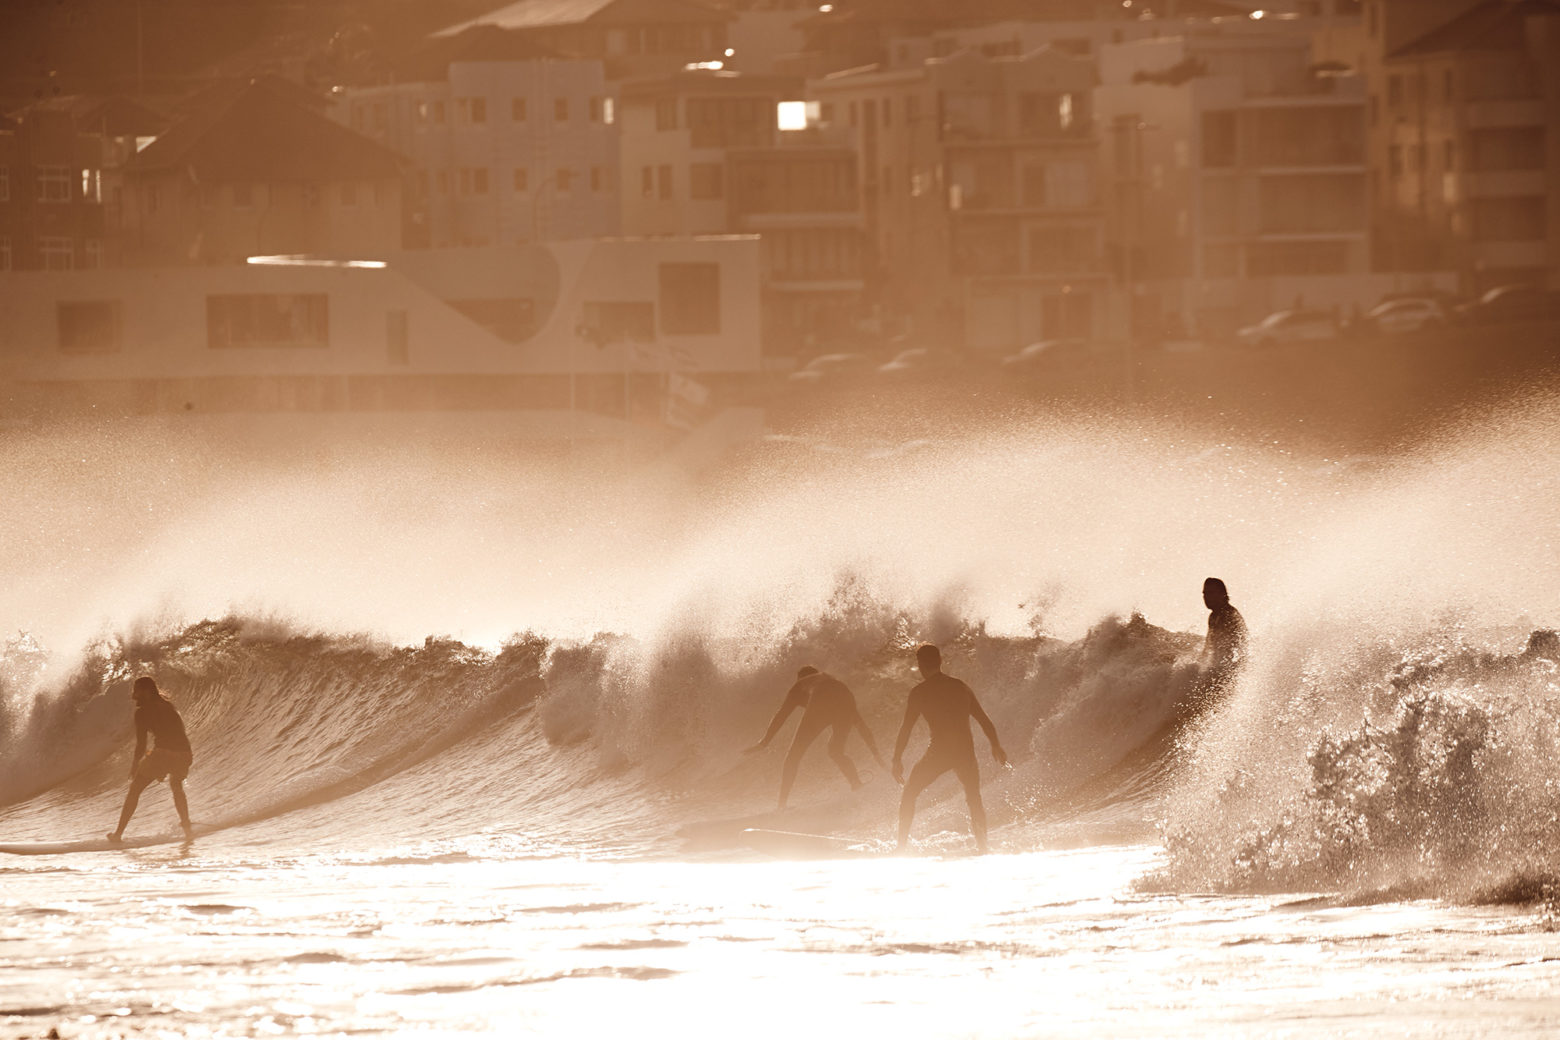 Sharing is caring, well, in the middle of Bondi it is...